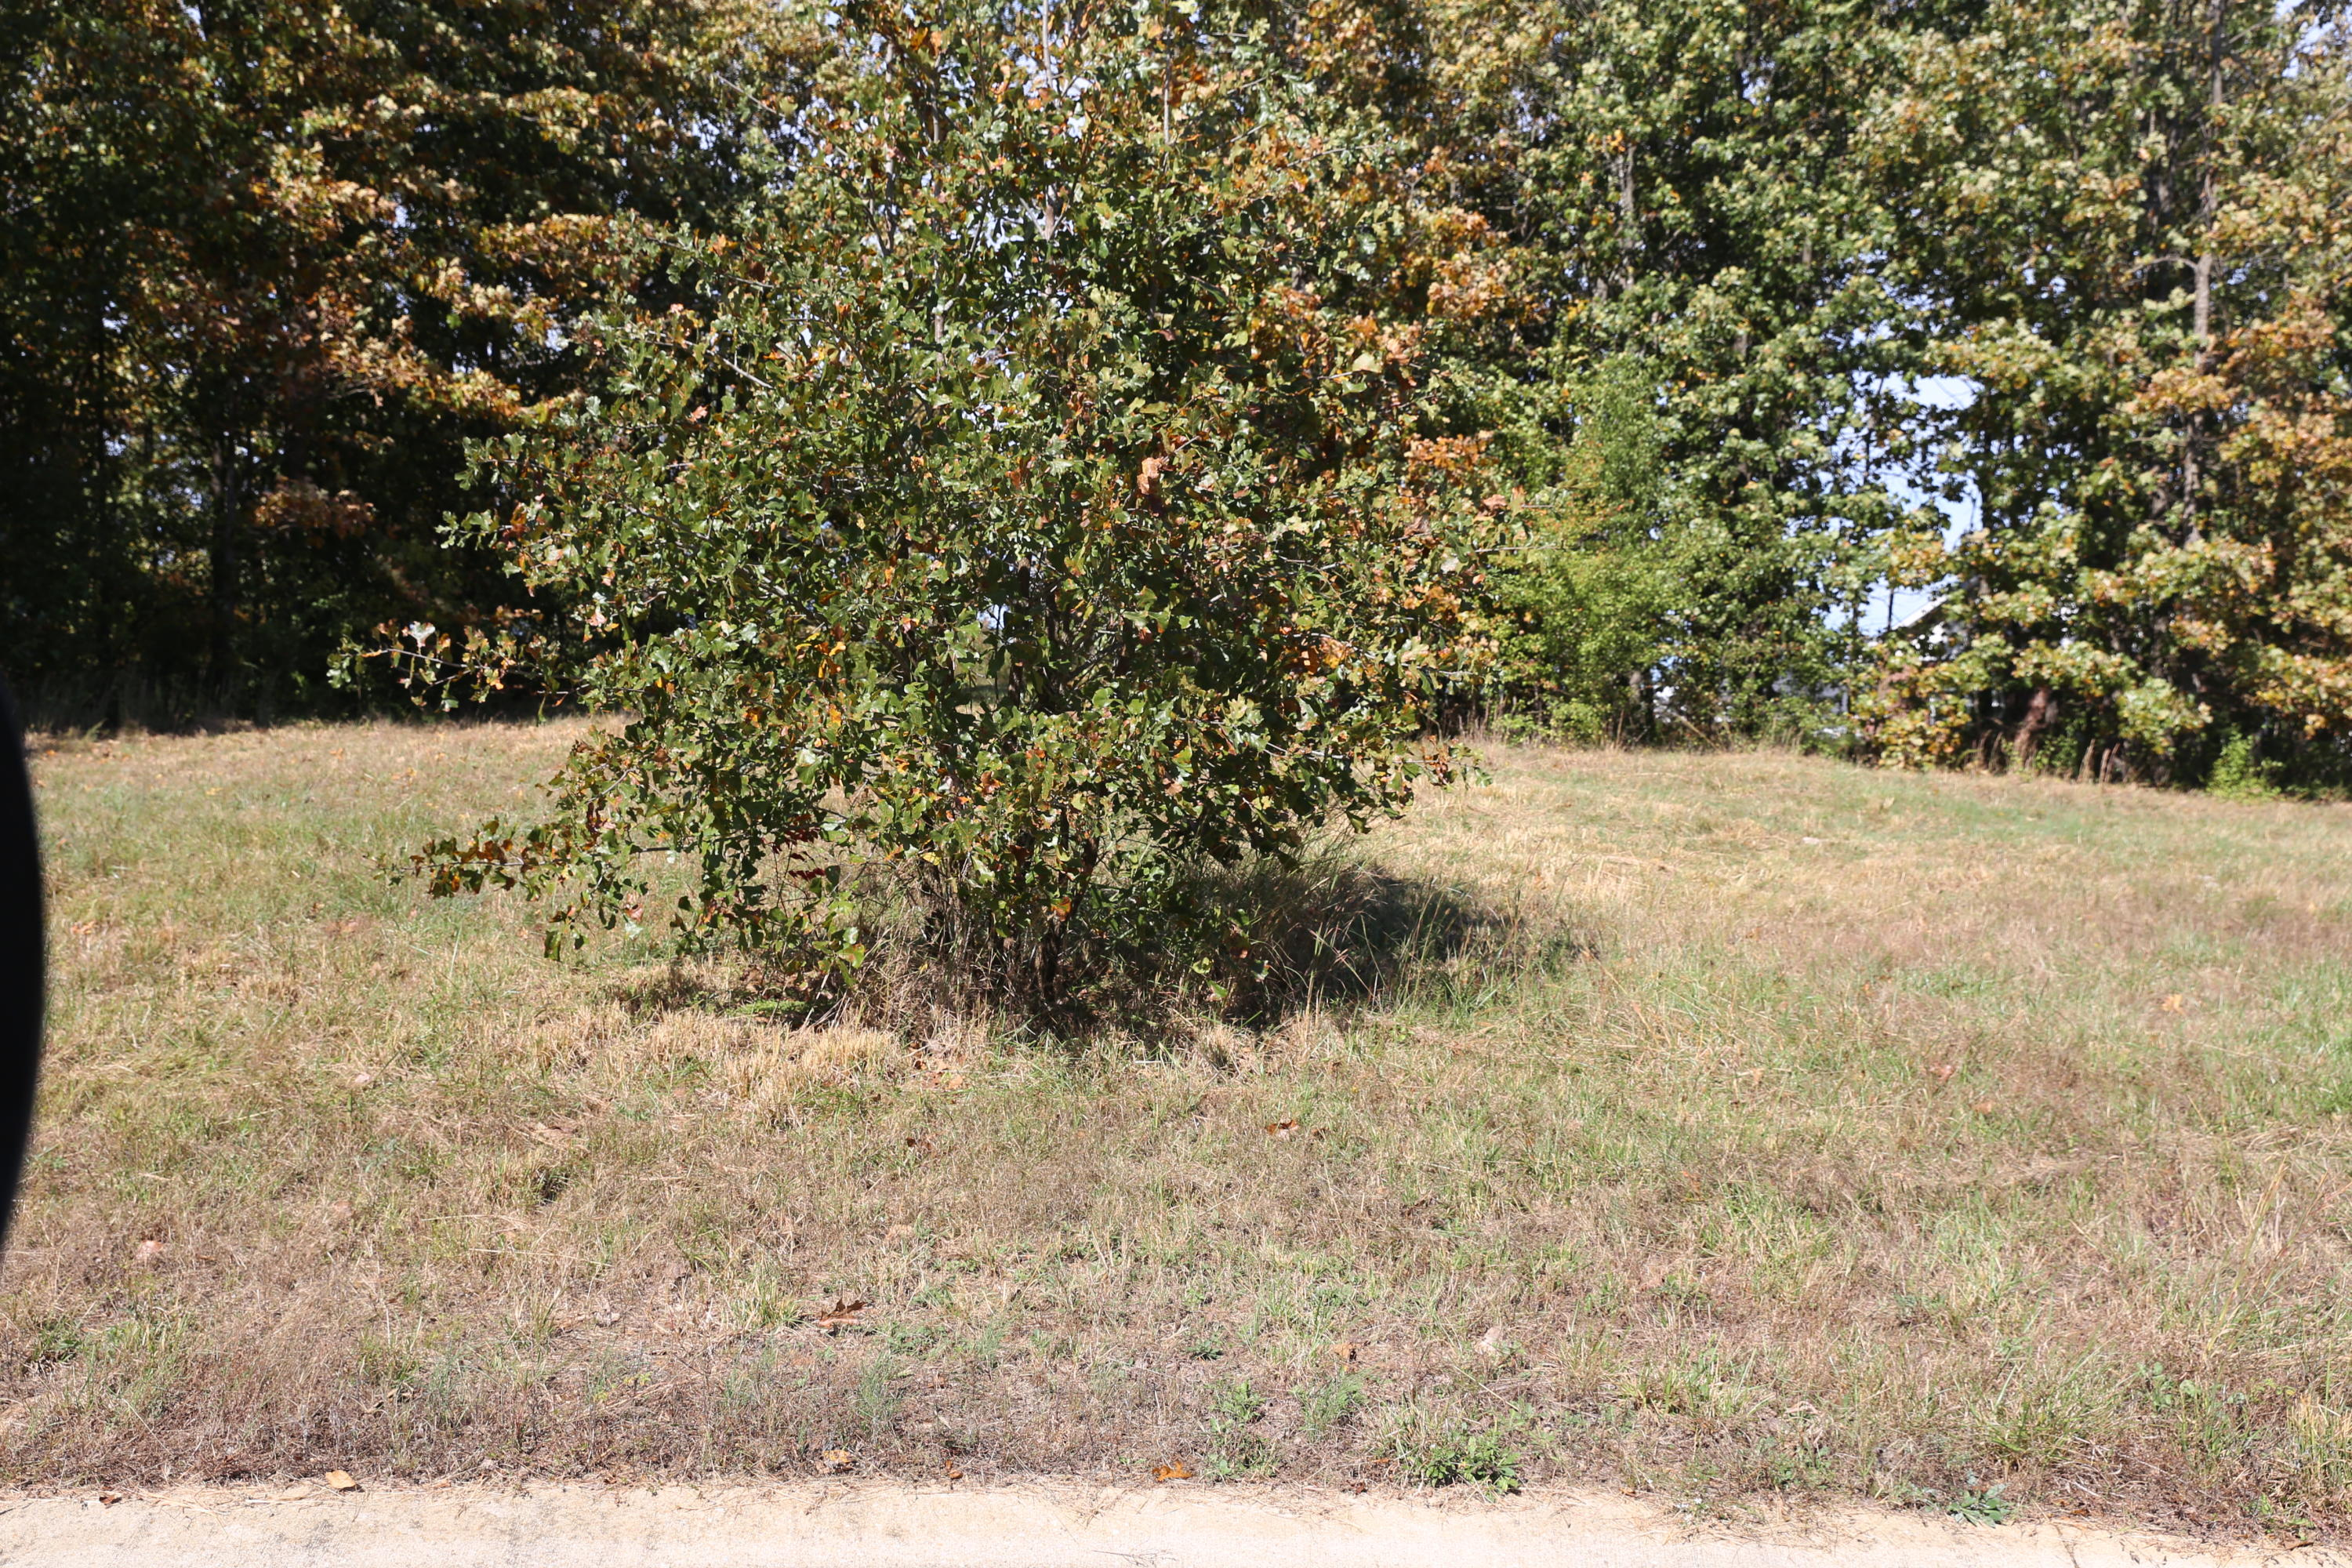 000 Wild Turkey Block 1 Lot 4 Property Photo